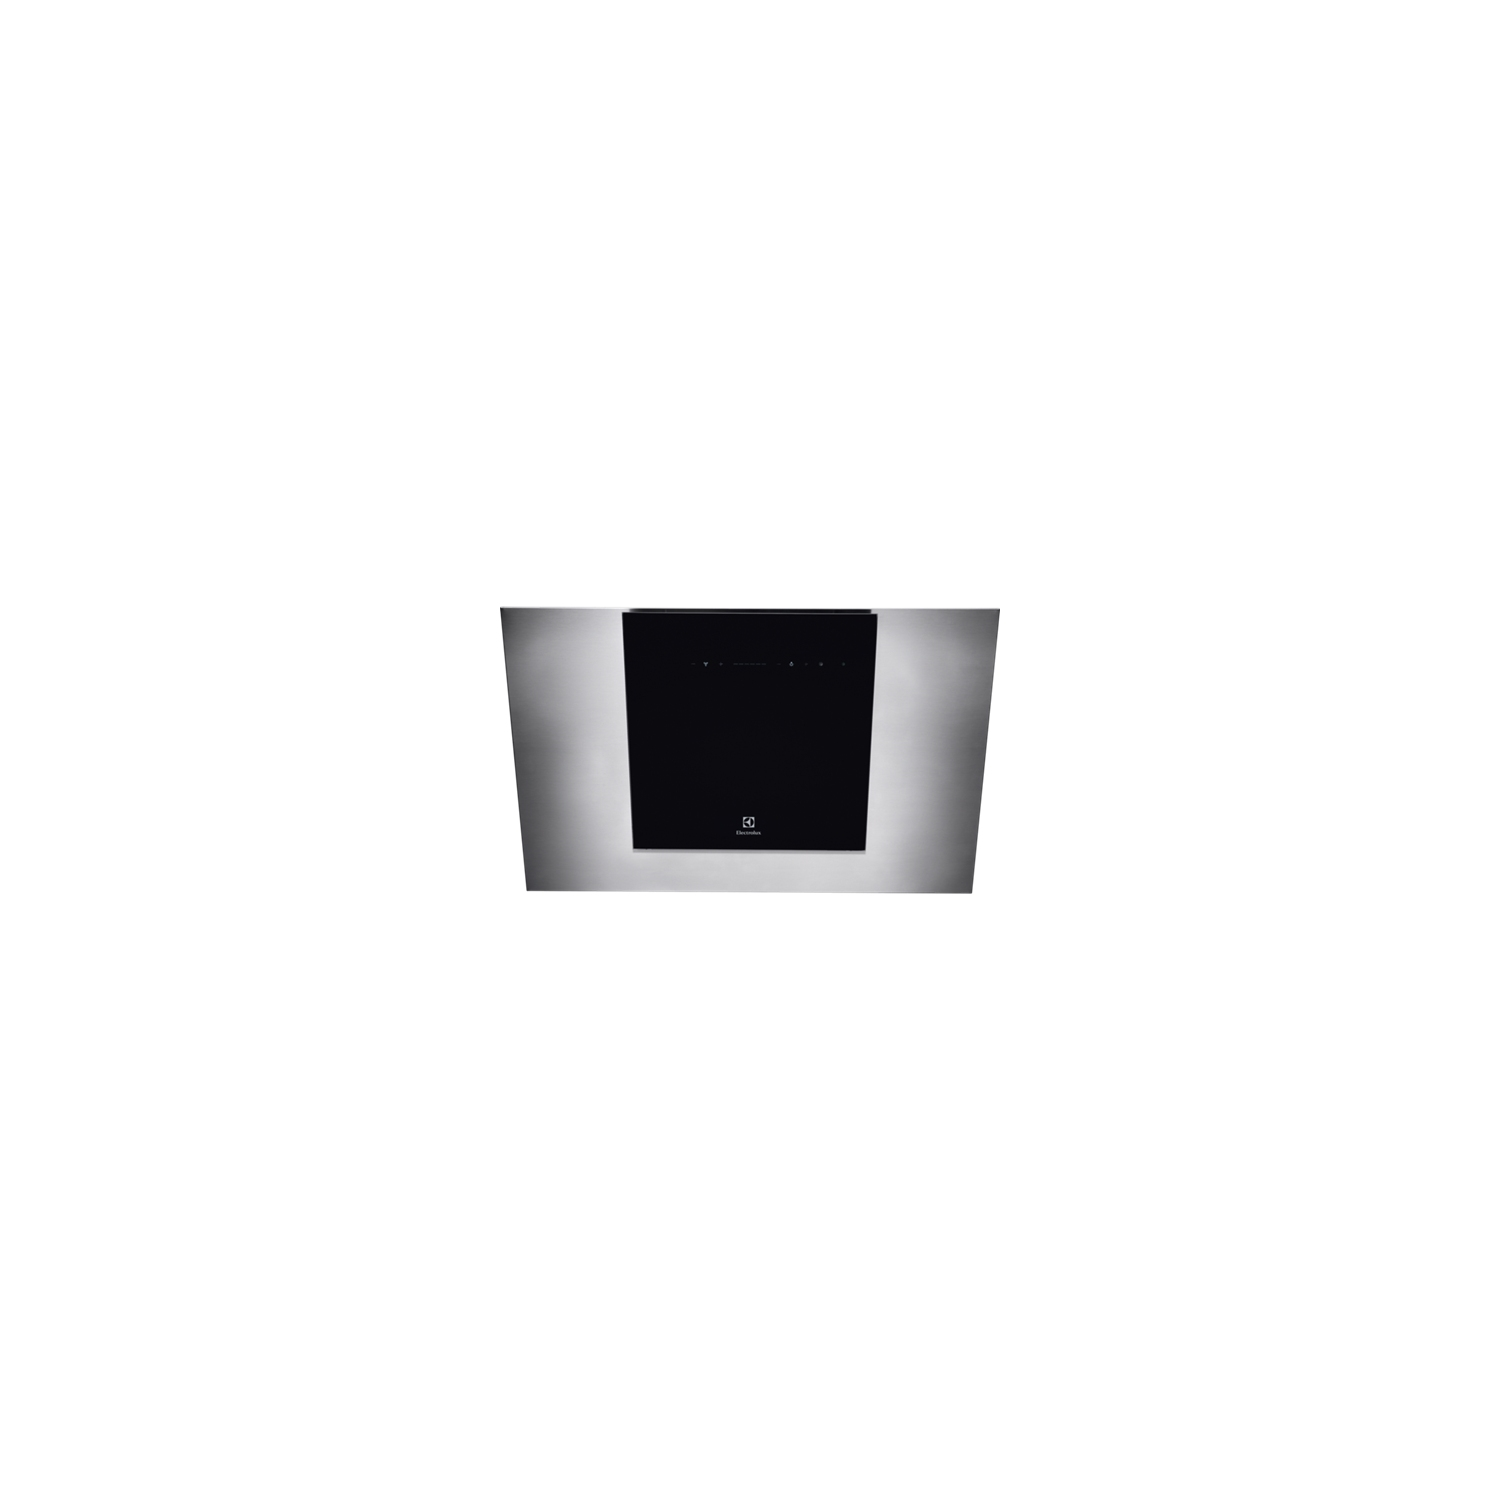 Electrolux 80cm Angled Chimney Hood Stainless Steel & Black - 1